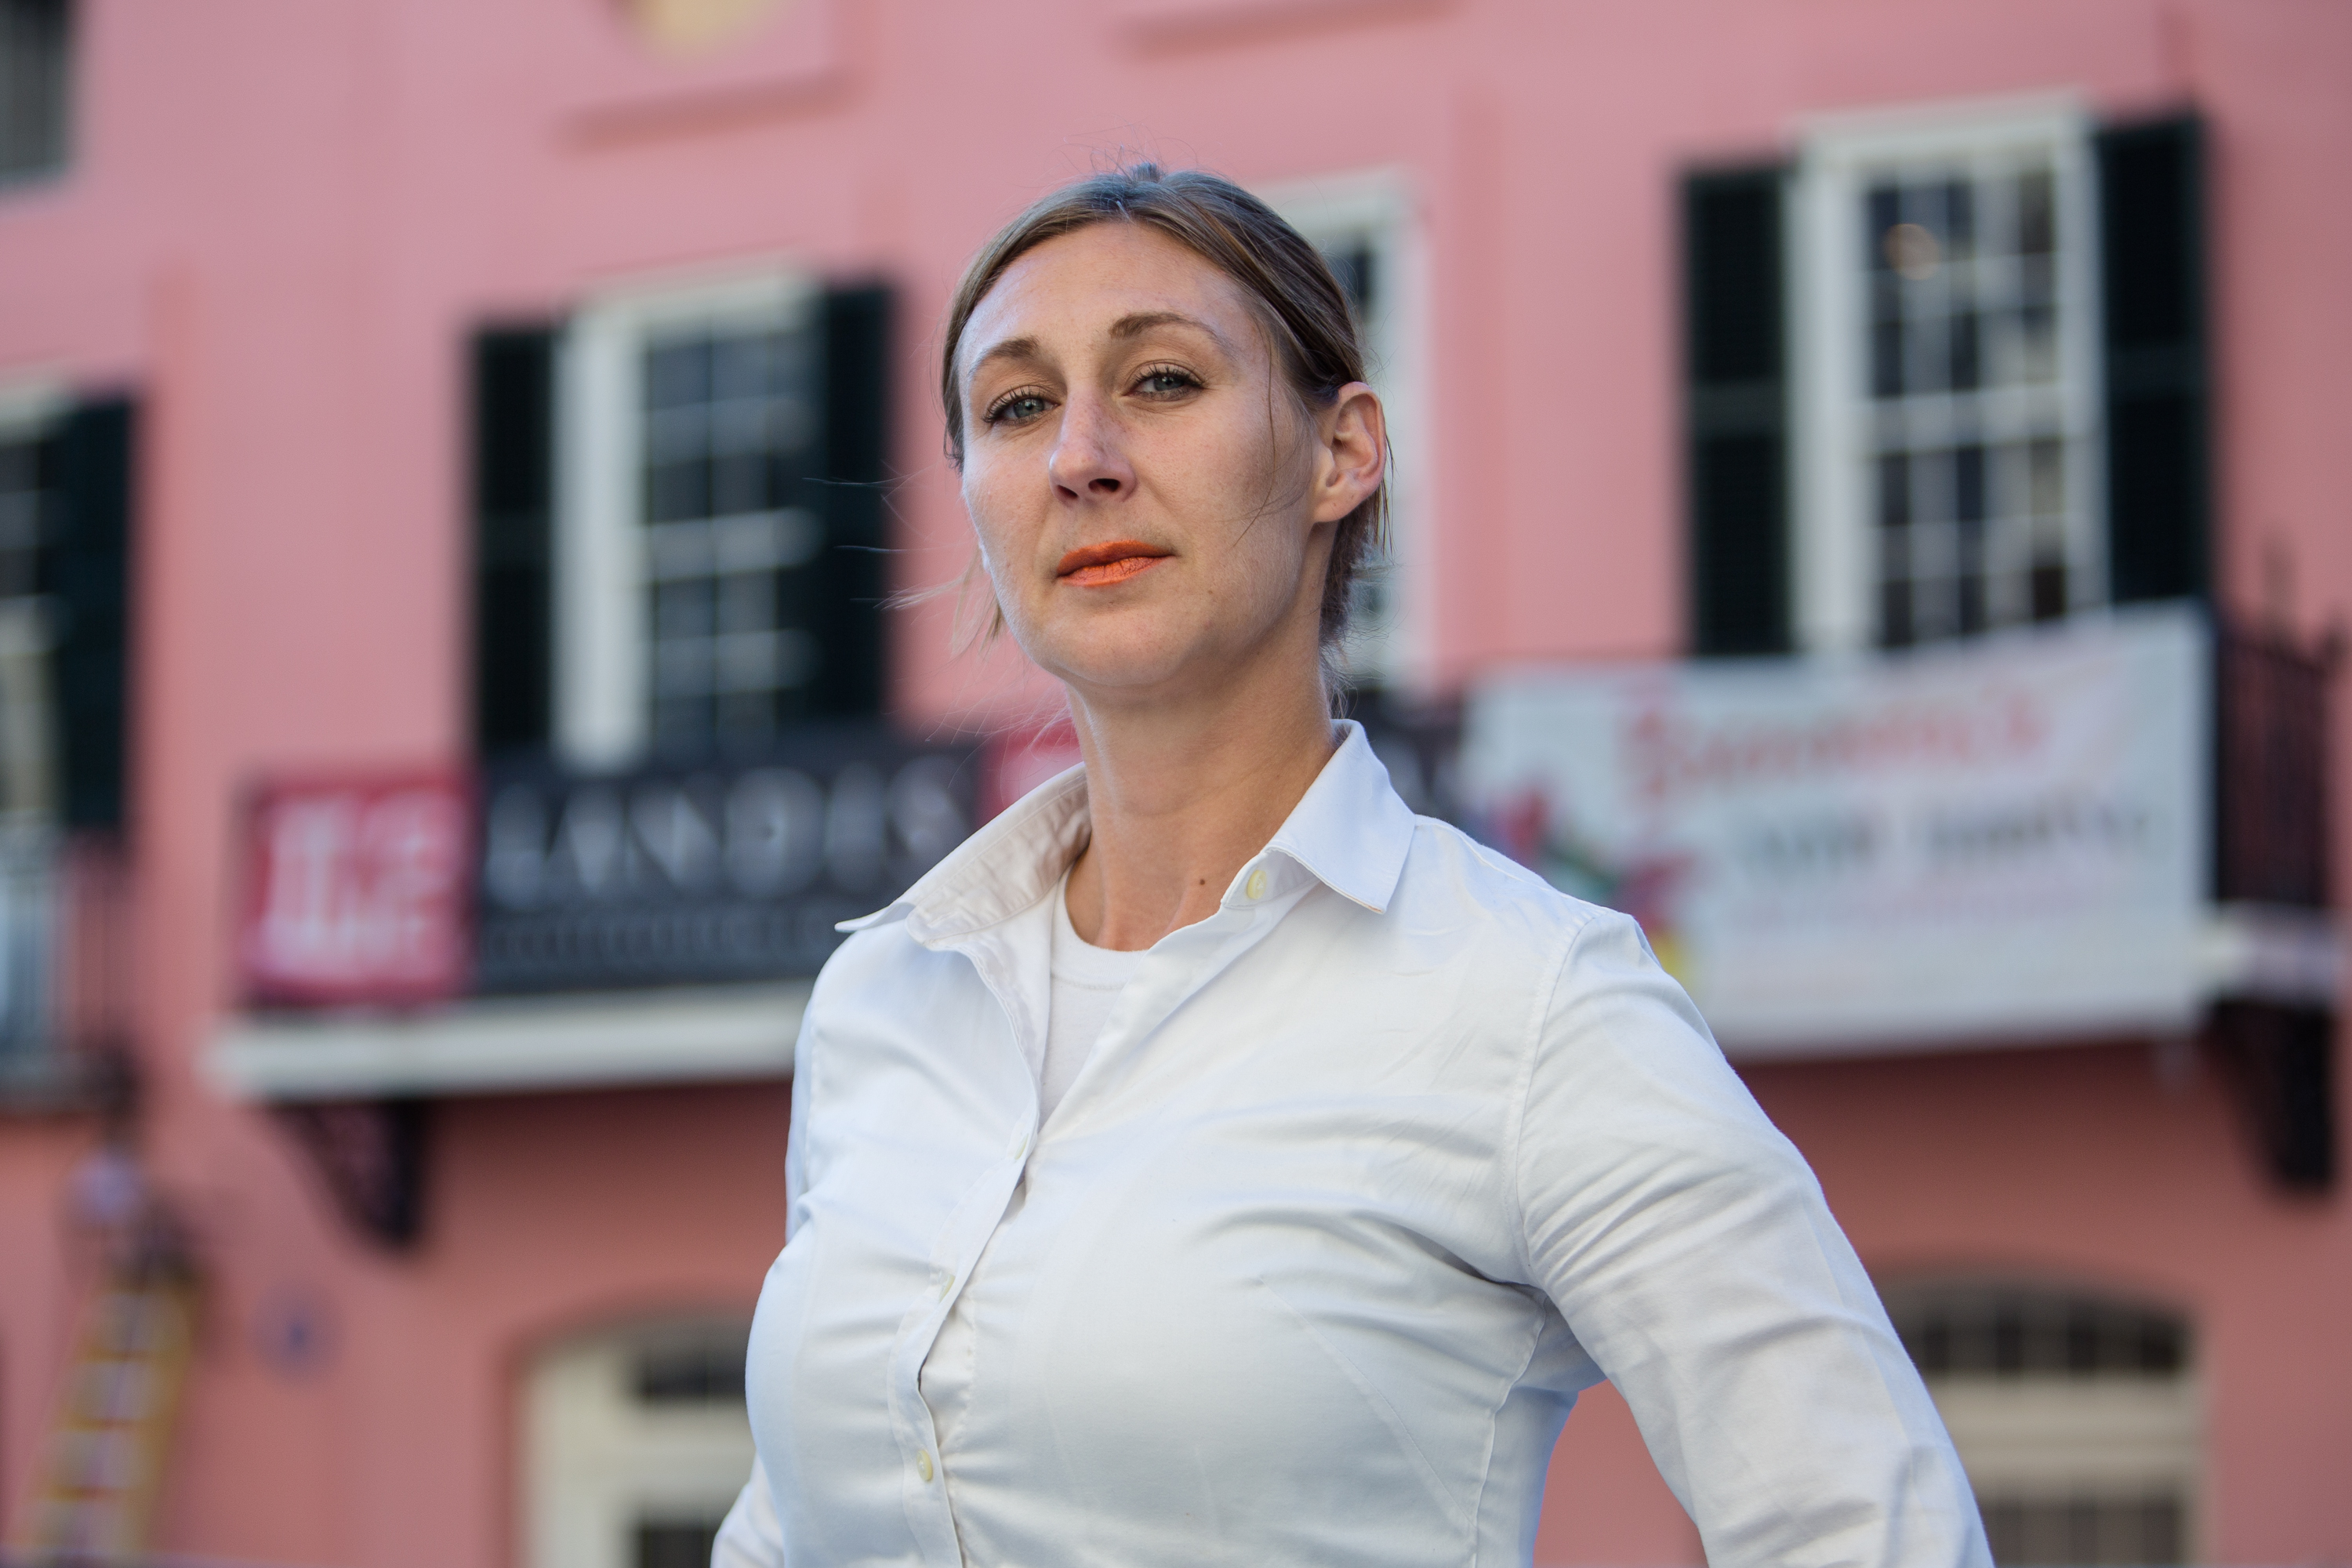 Carrie Dumaine, in front of upcoming Brennan's